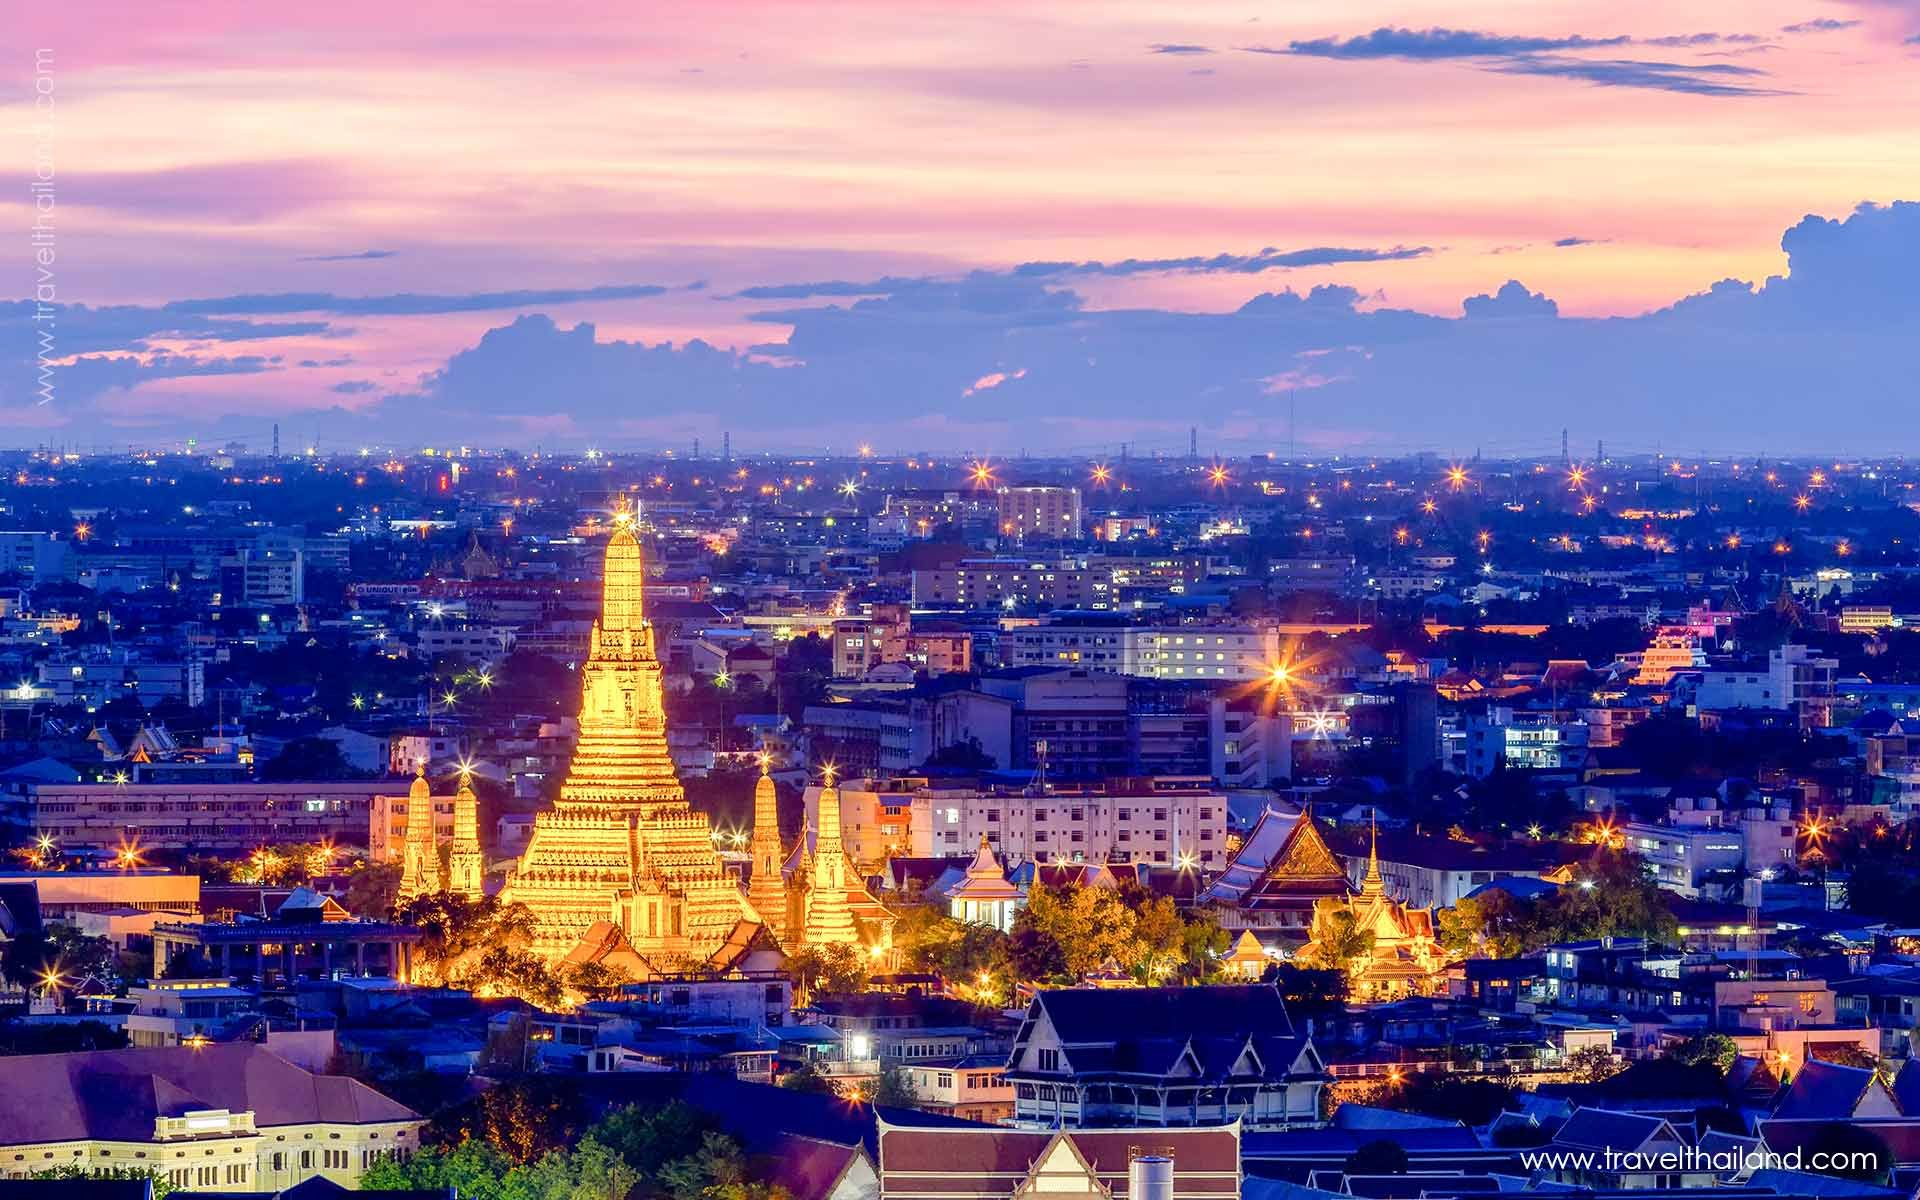 The Treasures of Thailand & Myanmar - 12 days